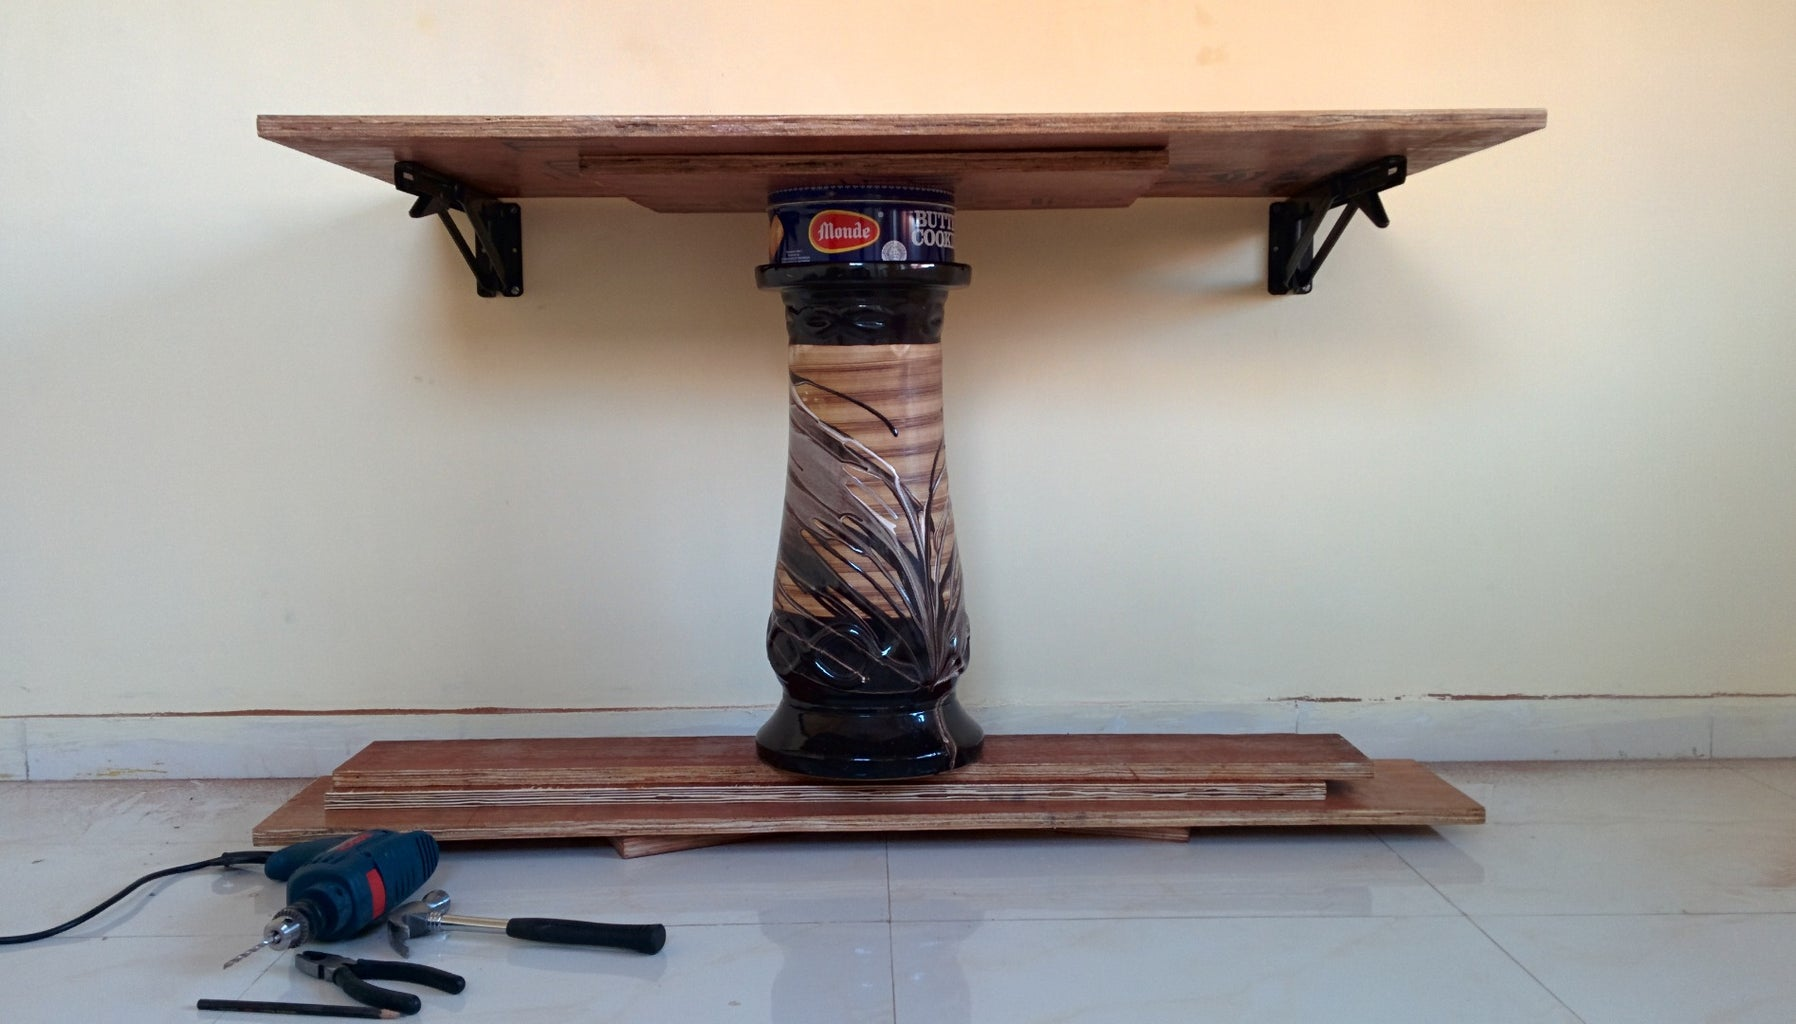 Fixing the Table Height